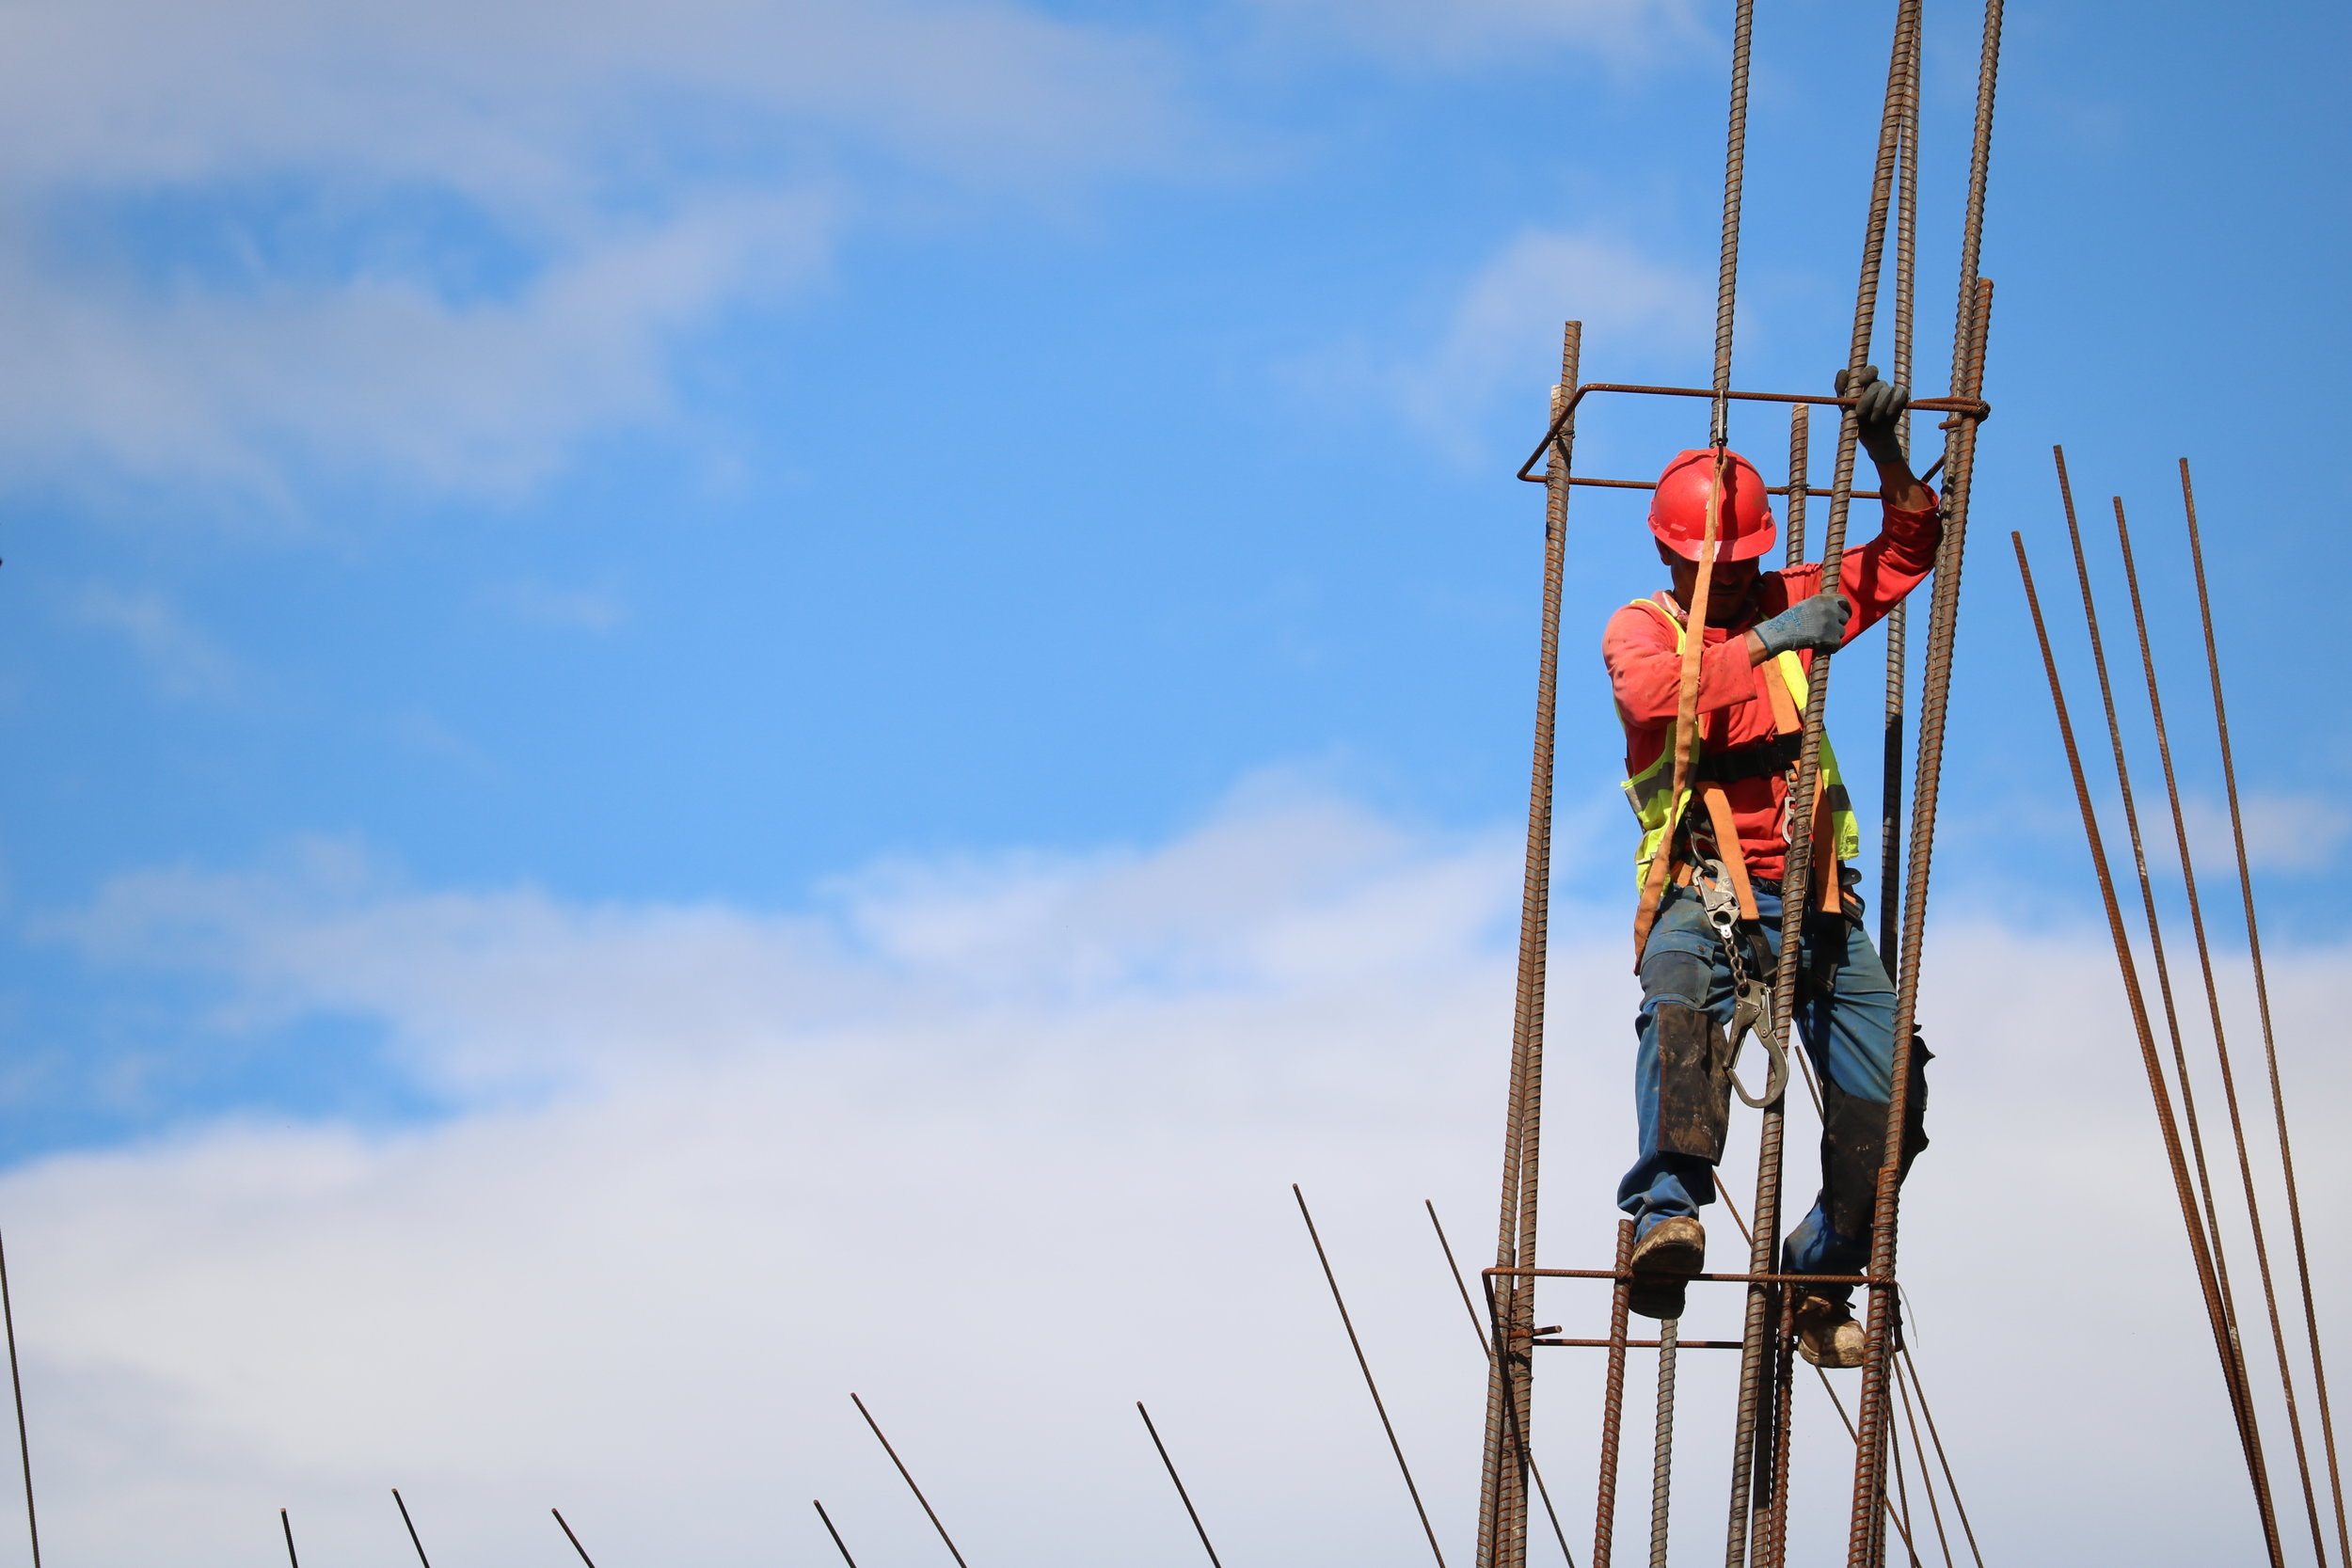 A construction man working on a piece of metal in front of a beautiful blue sky